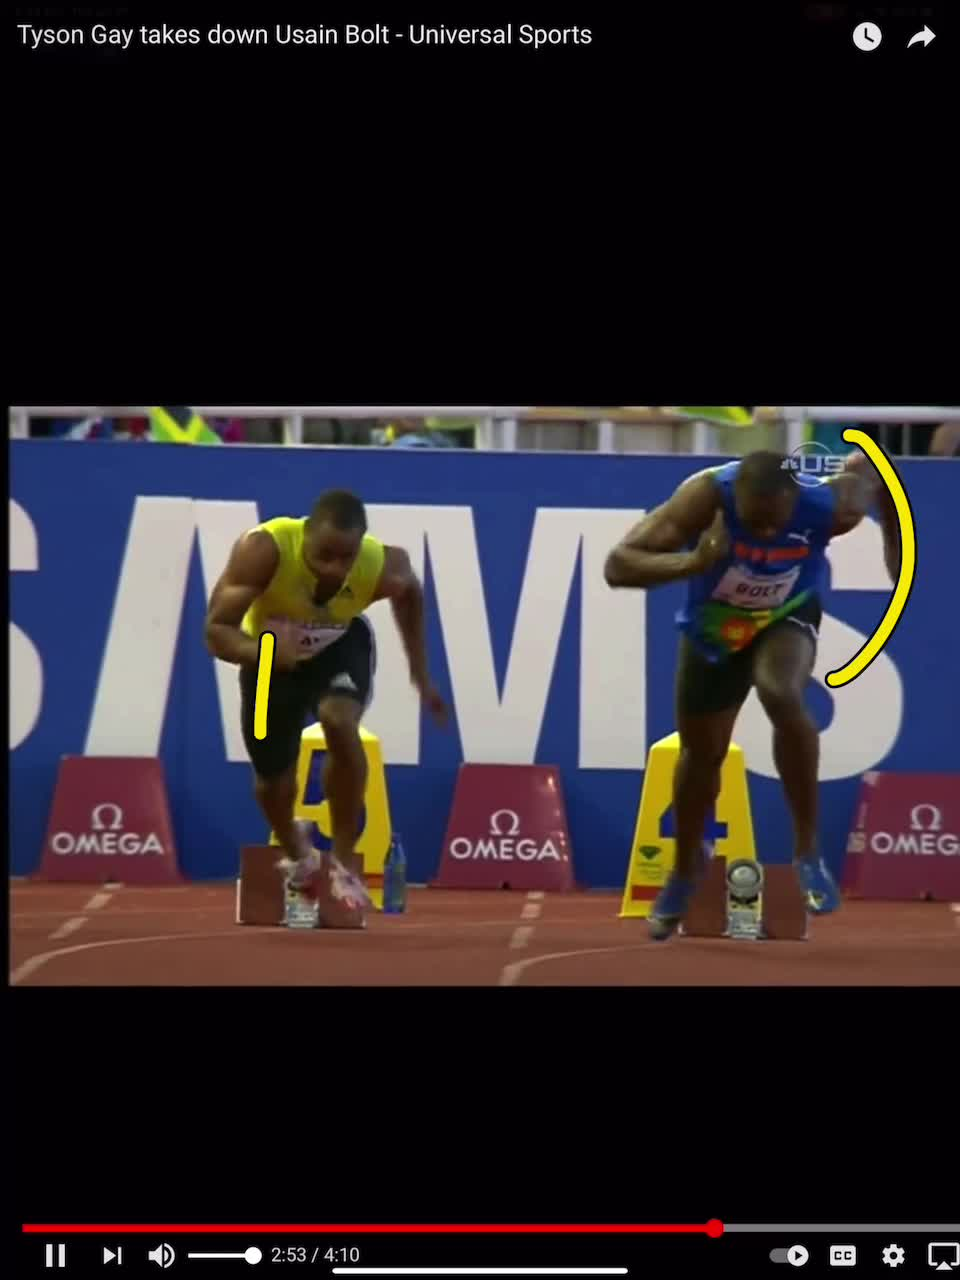 bolt and gay elbow versus hand